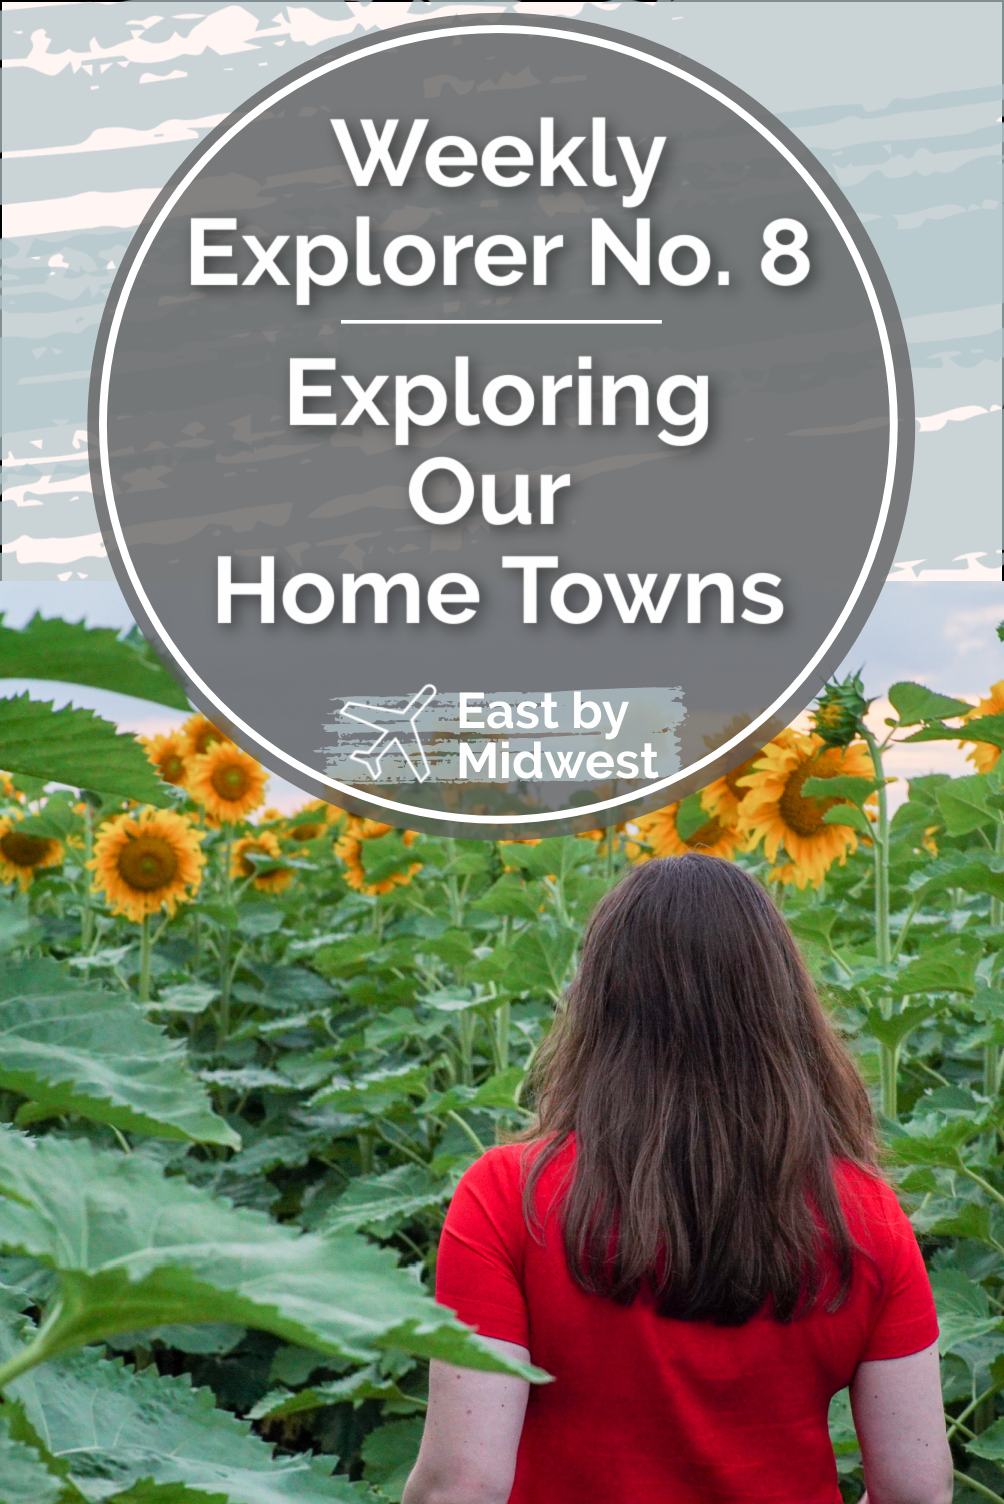 Weekly Explorer No. 8: Exploring Our Home Towns